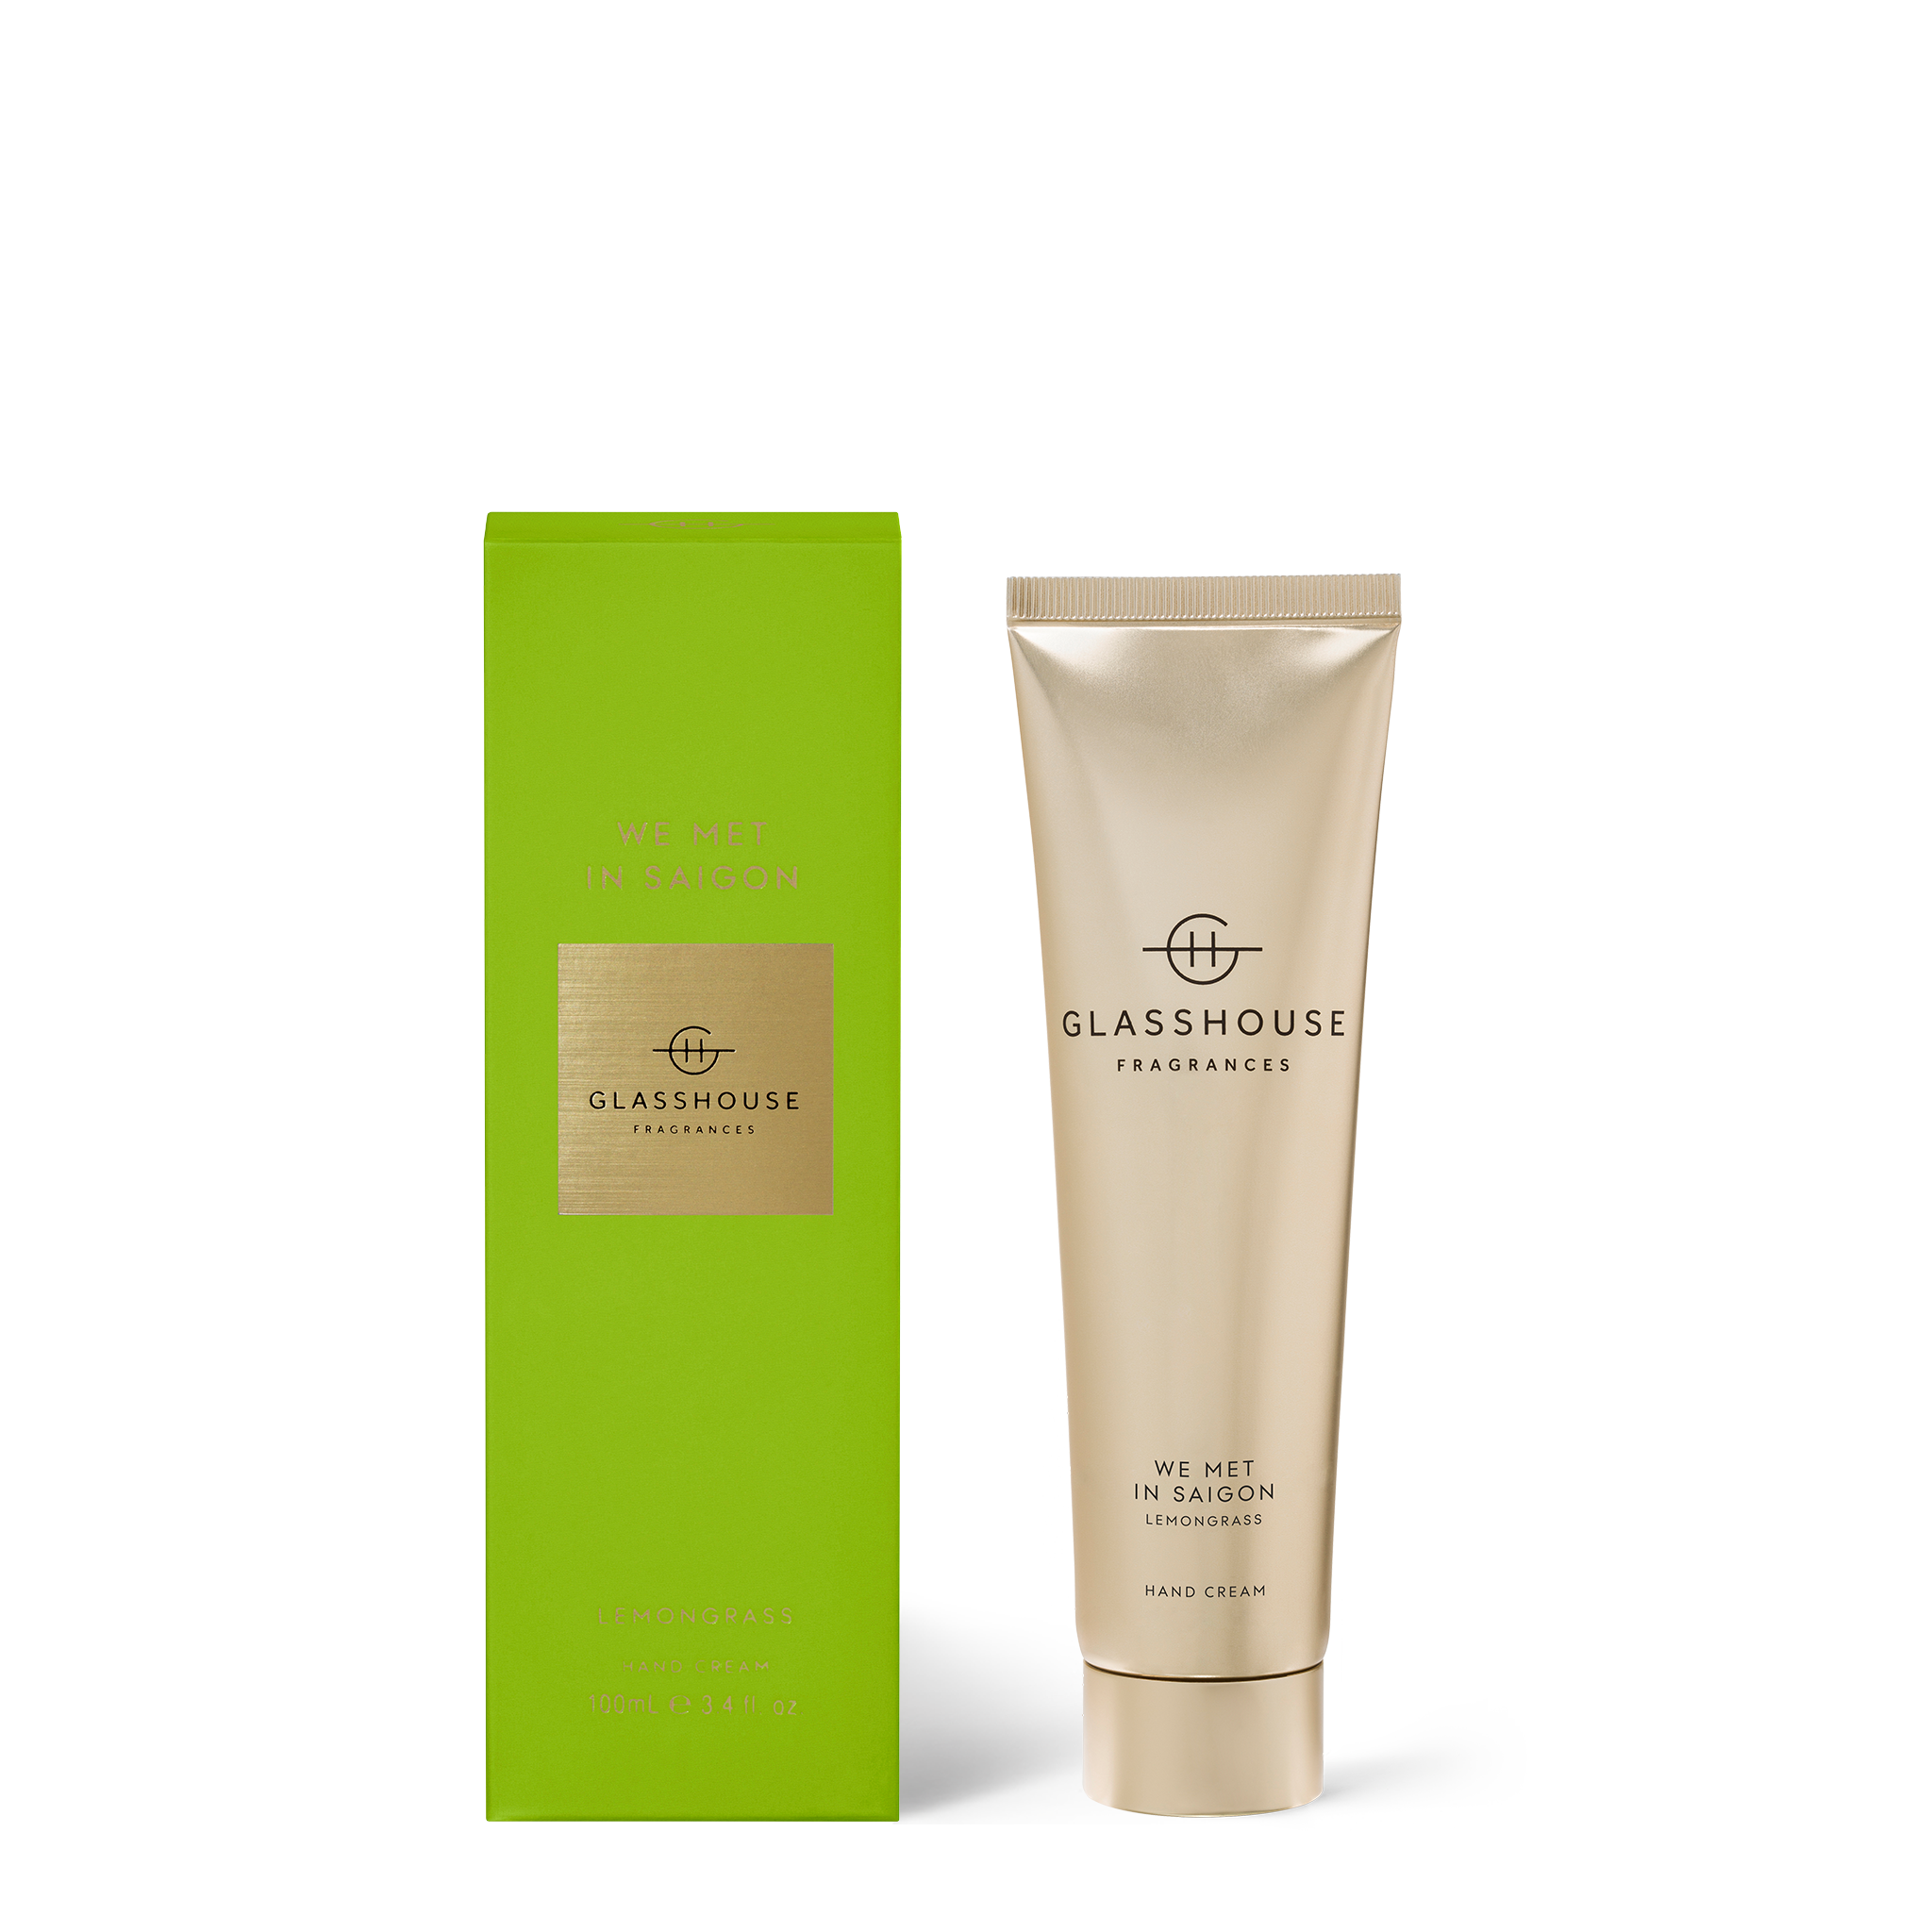 GLASSHOUSE FRAGRANCES We Met in Saigon Hand Cream 100ml